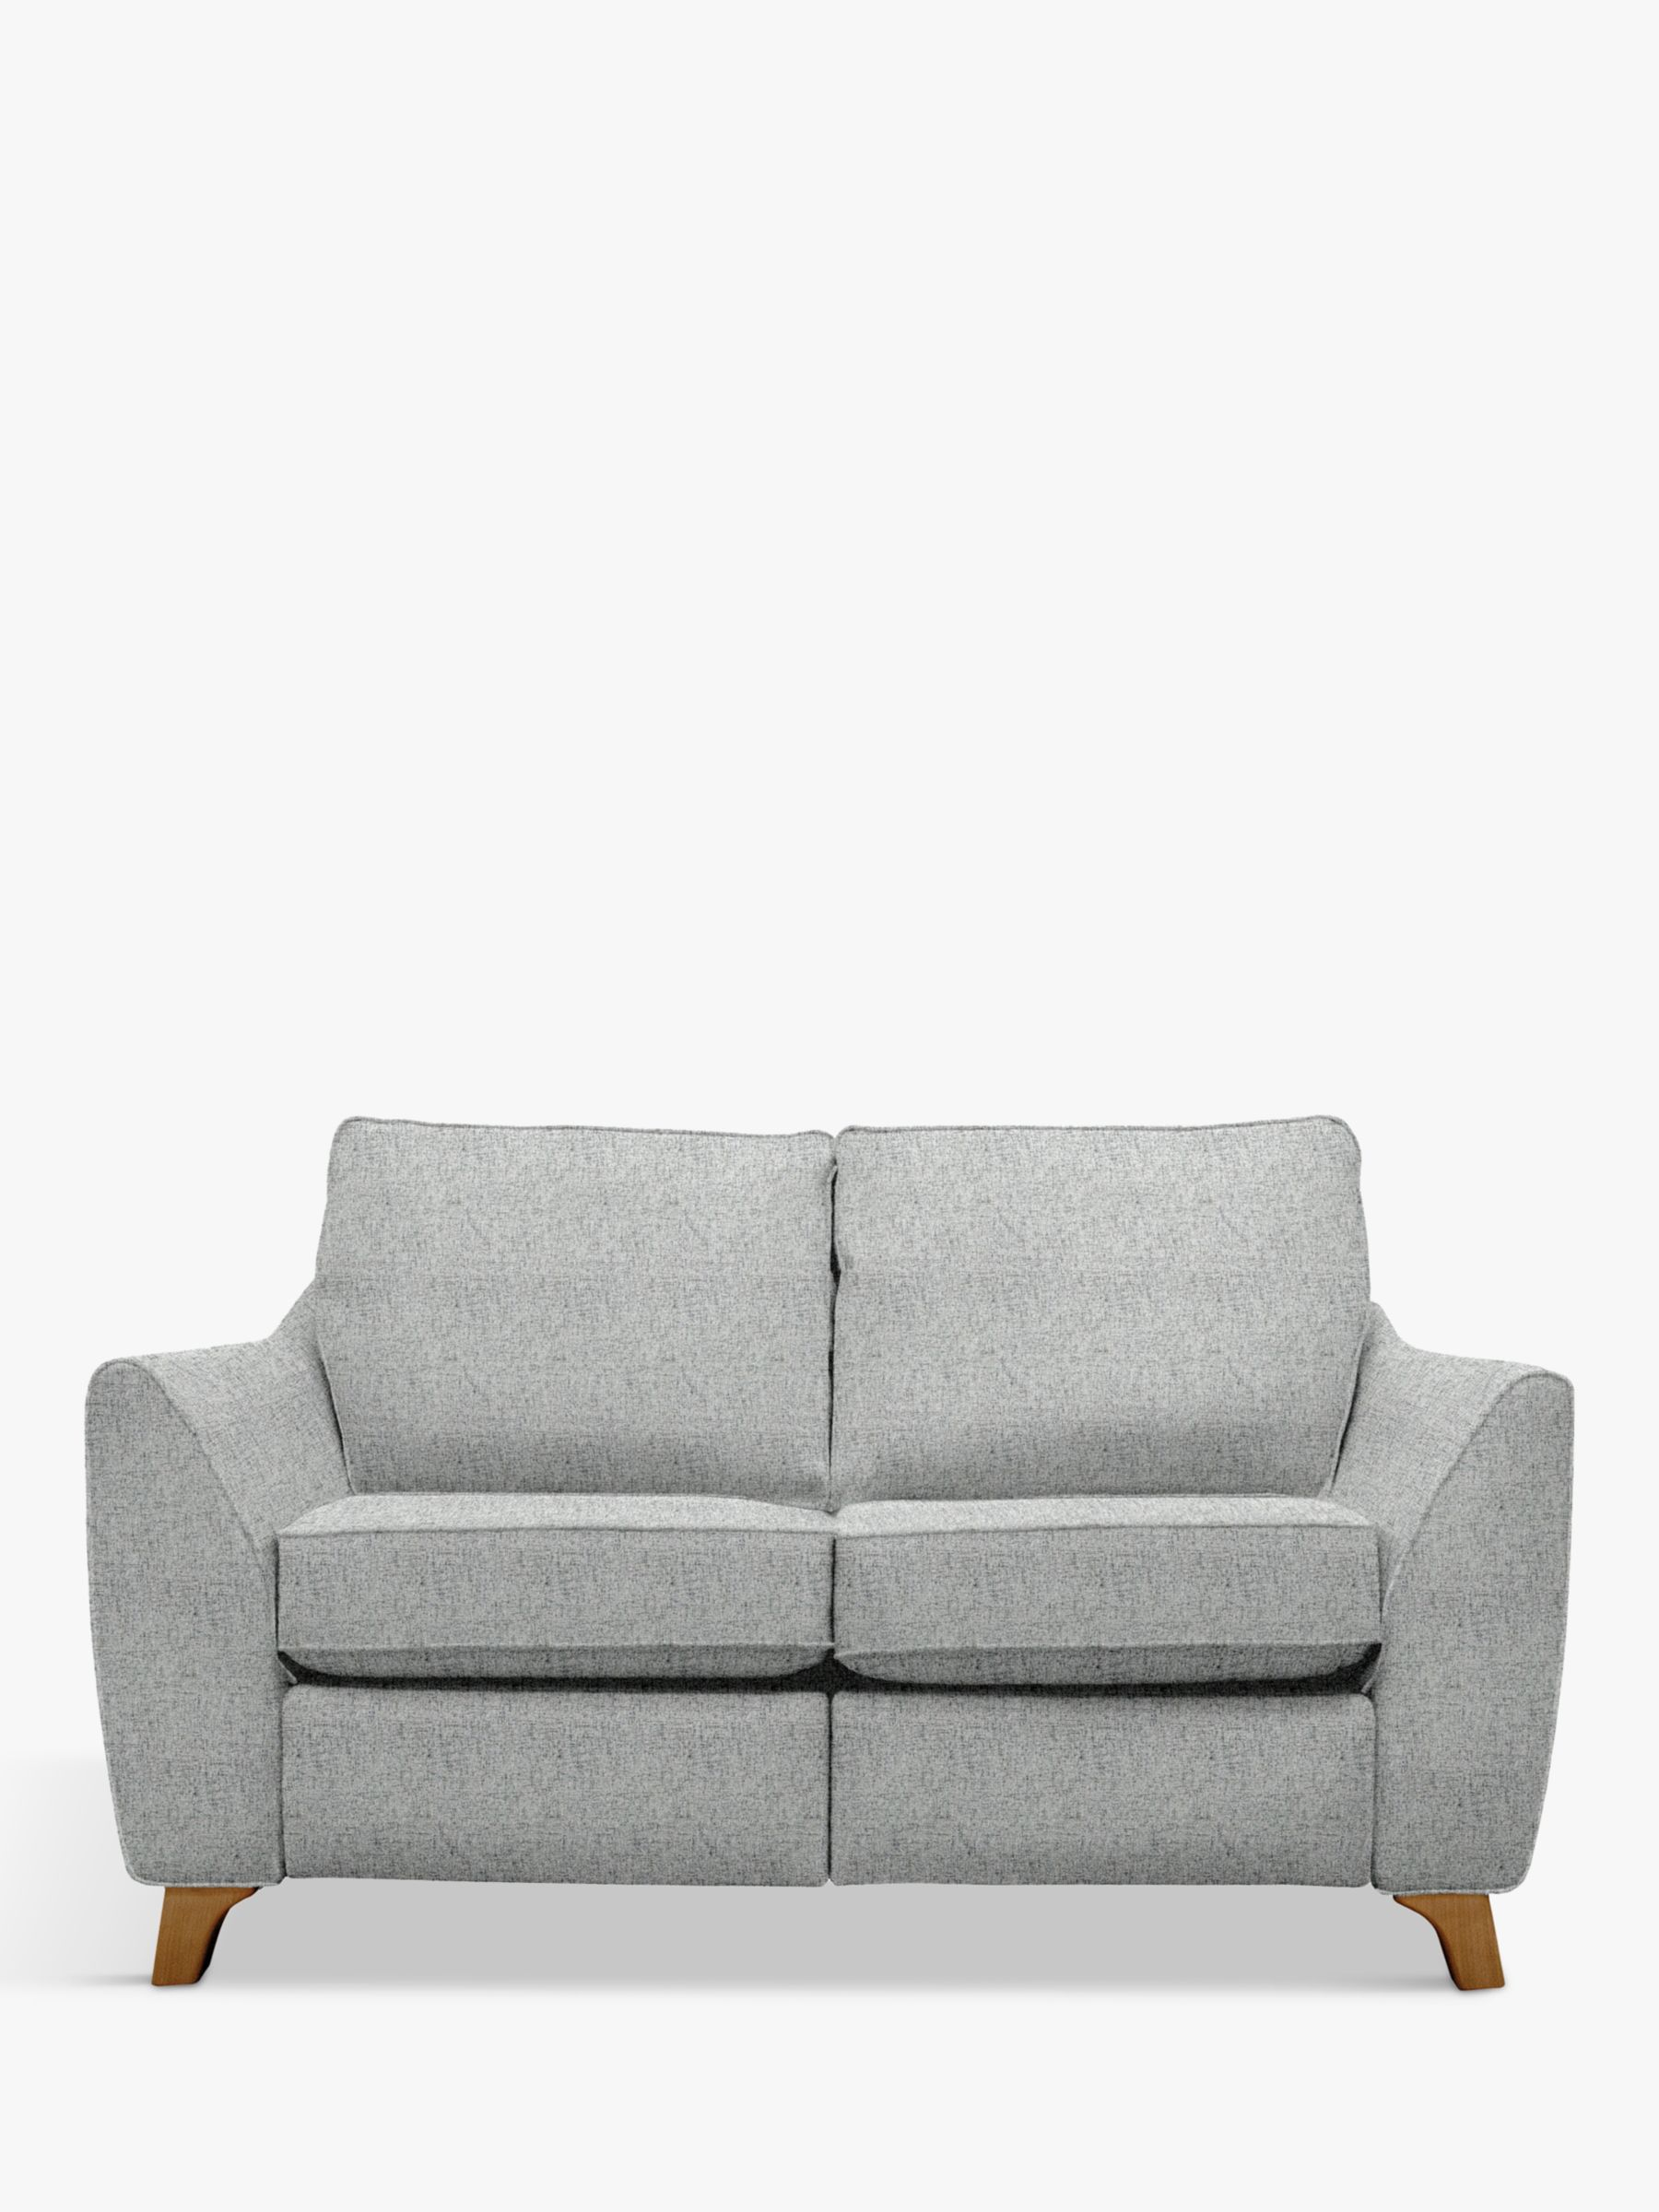 G Plan Vintage G Plan Vintage The Sixty Eight Small 2 Seater Sofa with Footrest Mechanism, Sorren Grey